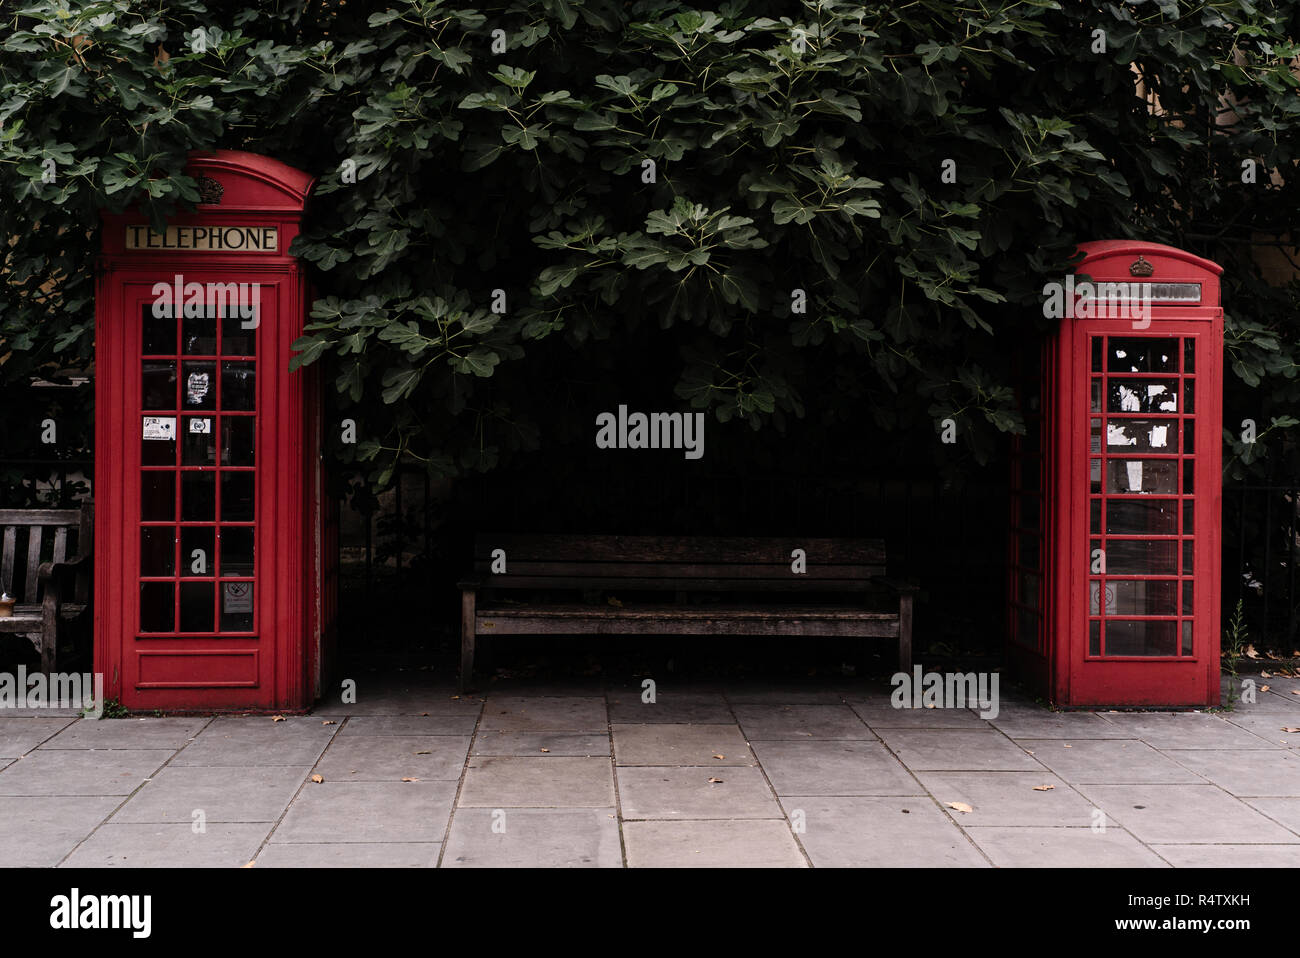 Two iconic red telephone boxes designed by Sir Giles Gilbert Scott, London, UK. - Stock Image